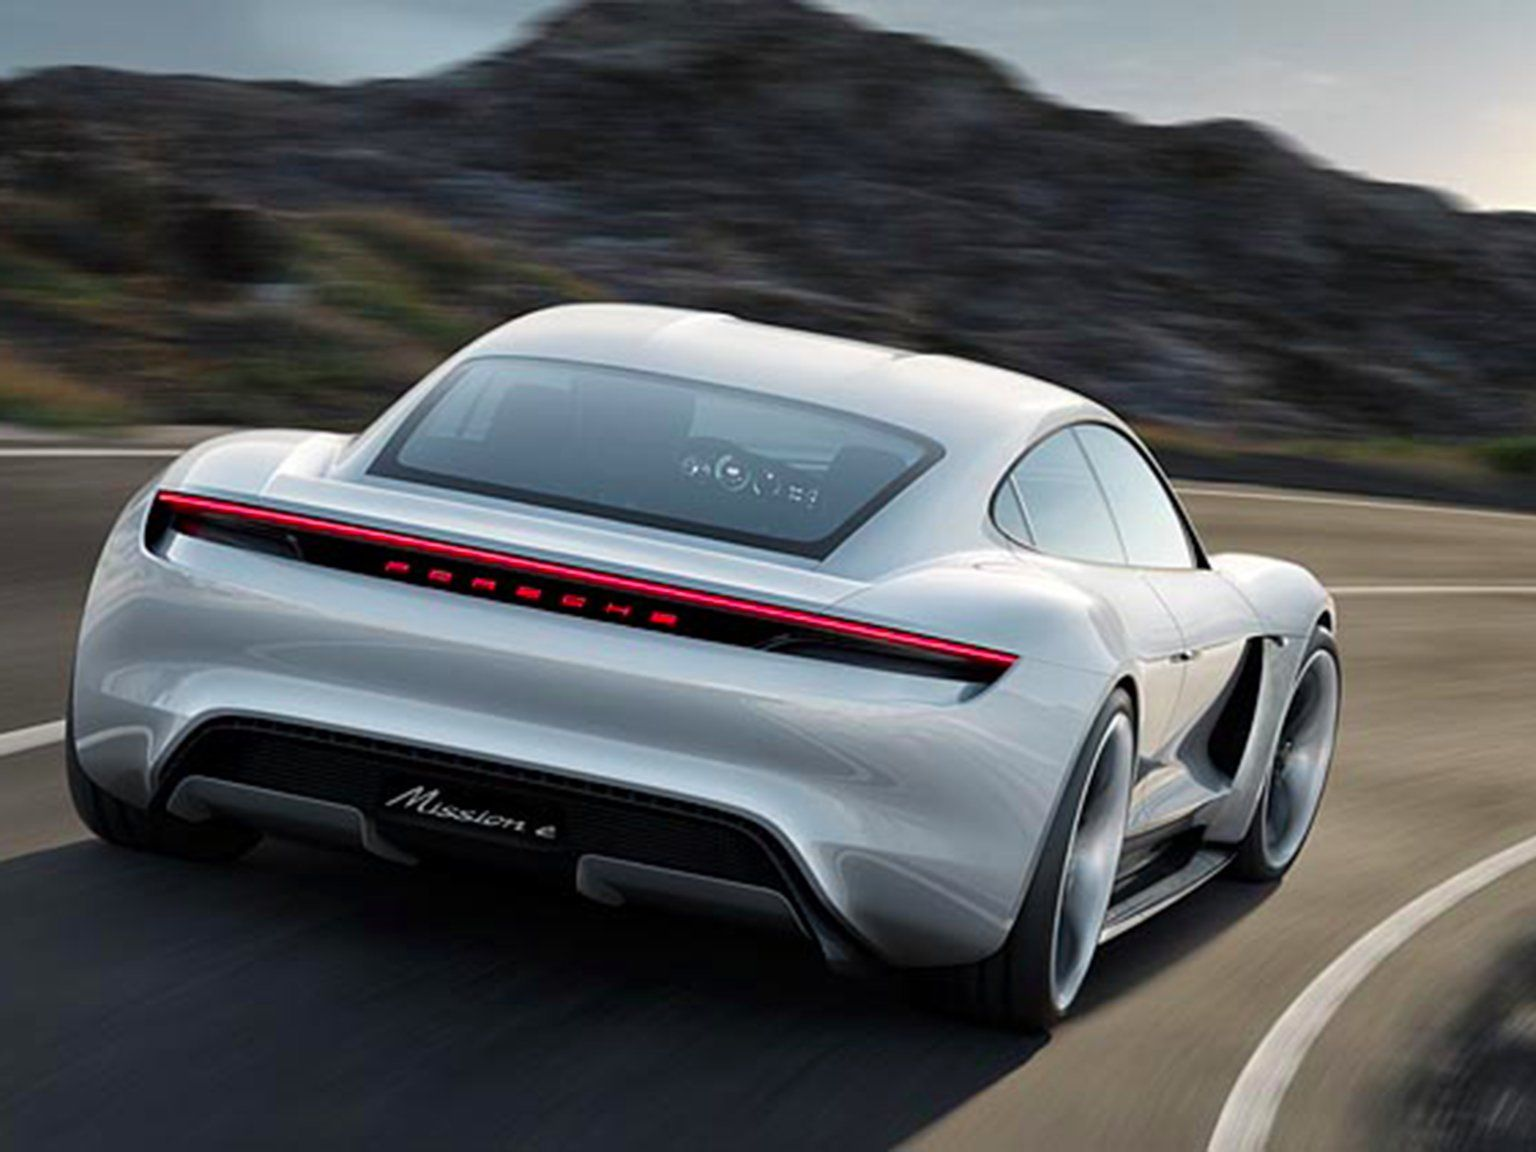 Porsche S Stunning Tesla Rival Will Arrive In 2019 And Cost 85 000 Porsche Mission Electric Sports Car Mission E